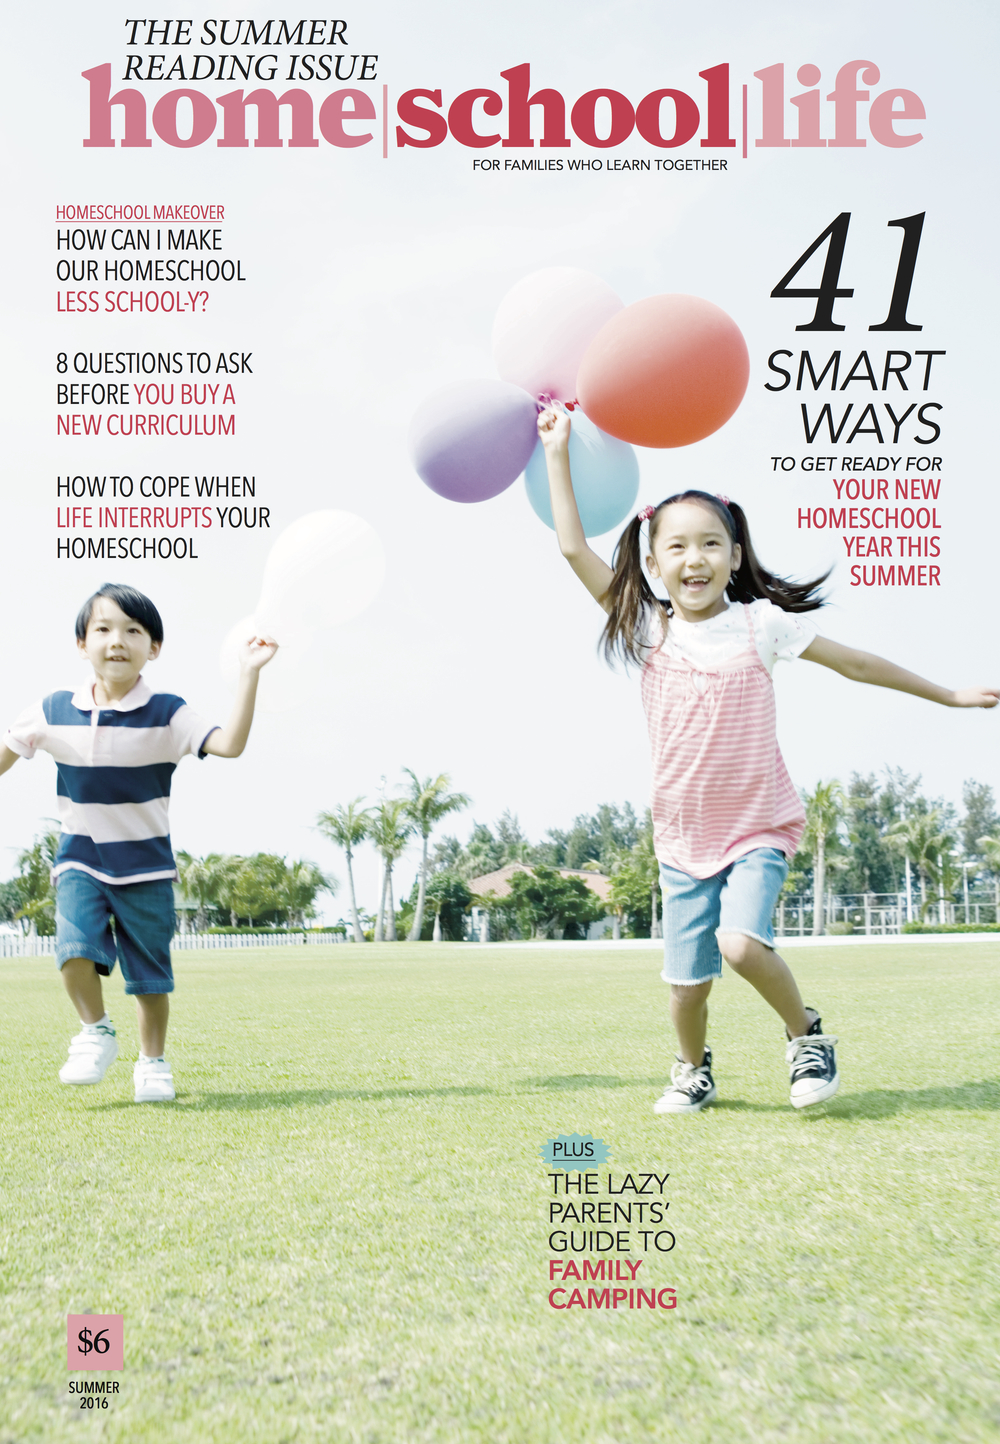 home/school/life magazine's summer issue